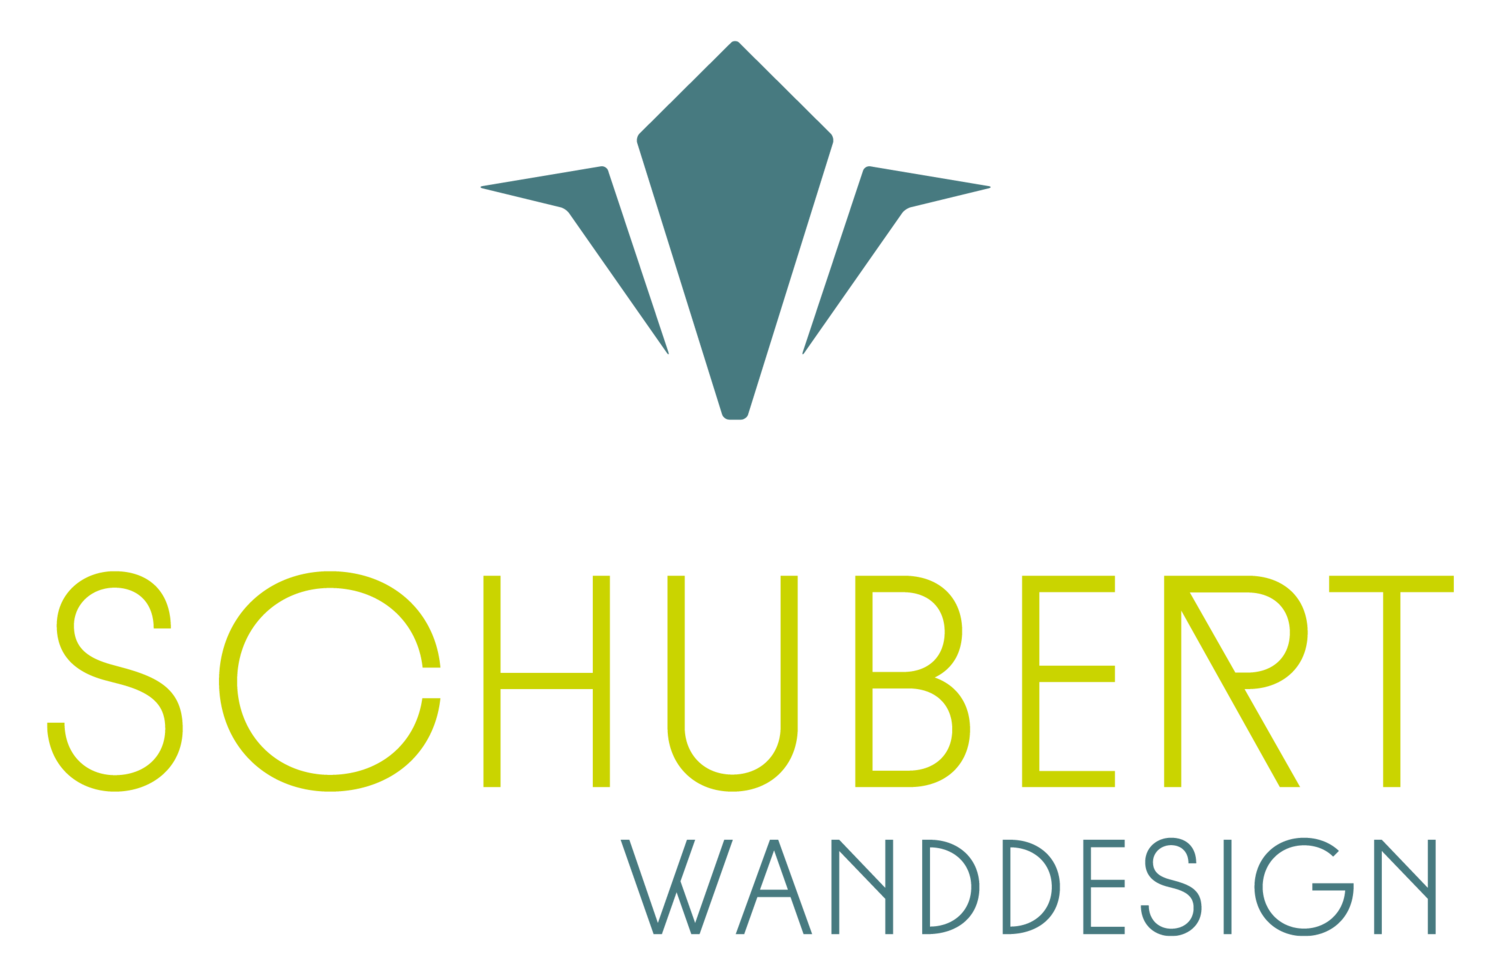 Schubert Wanddesign